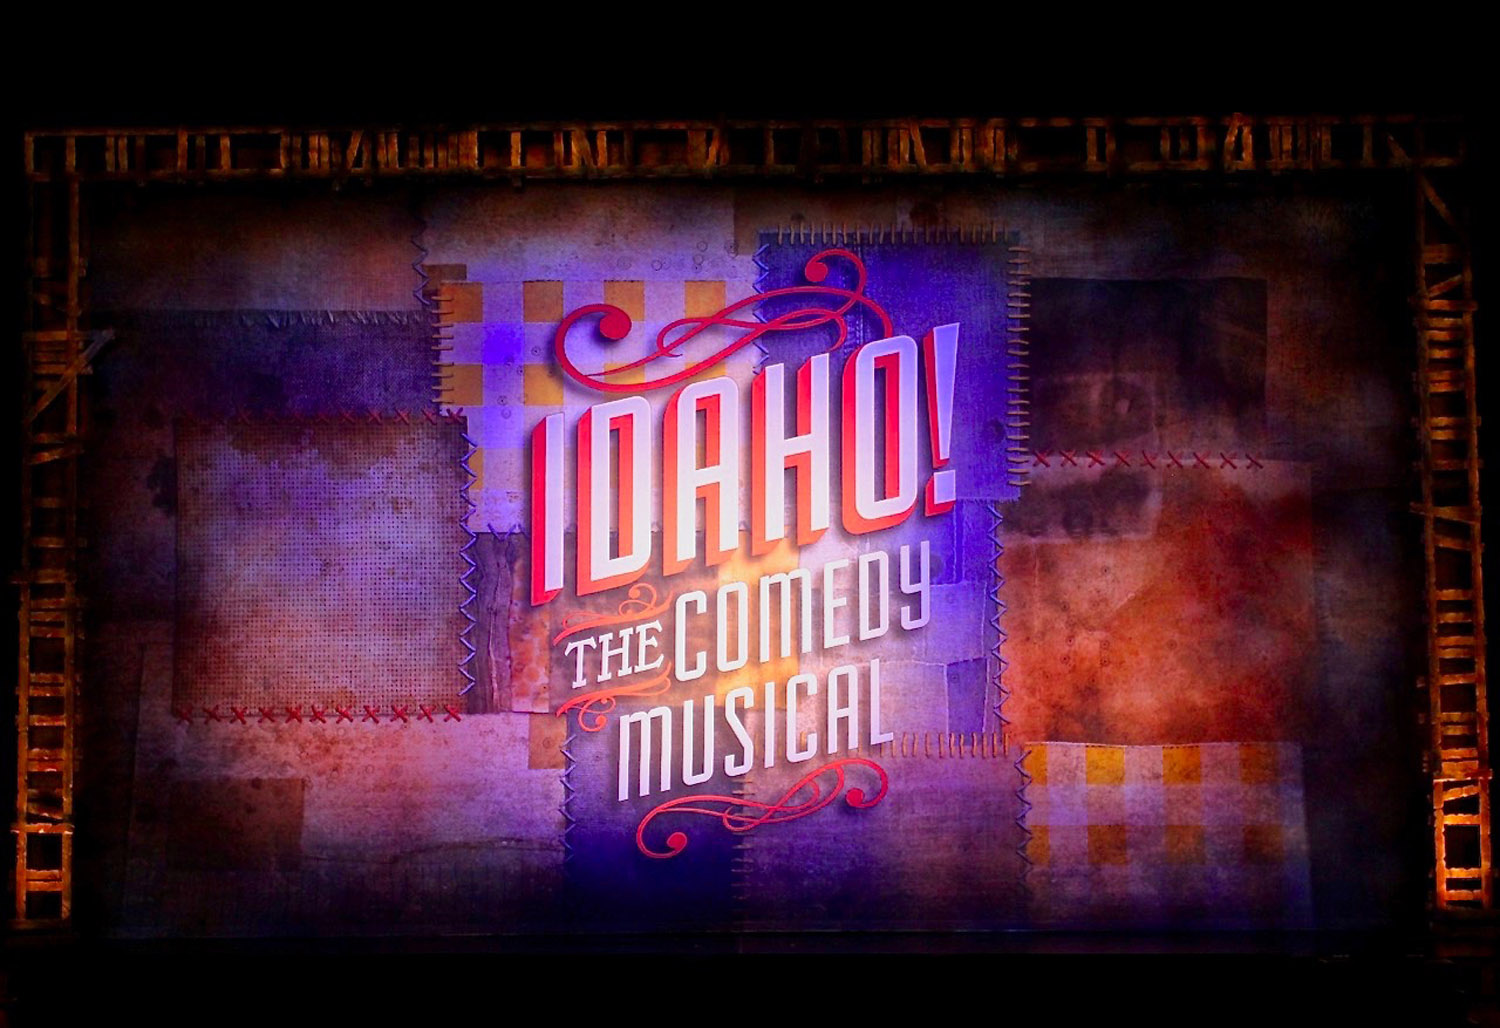 Idaho The Comedy Musical